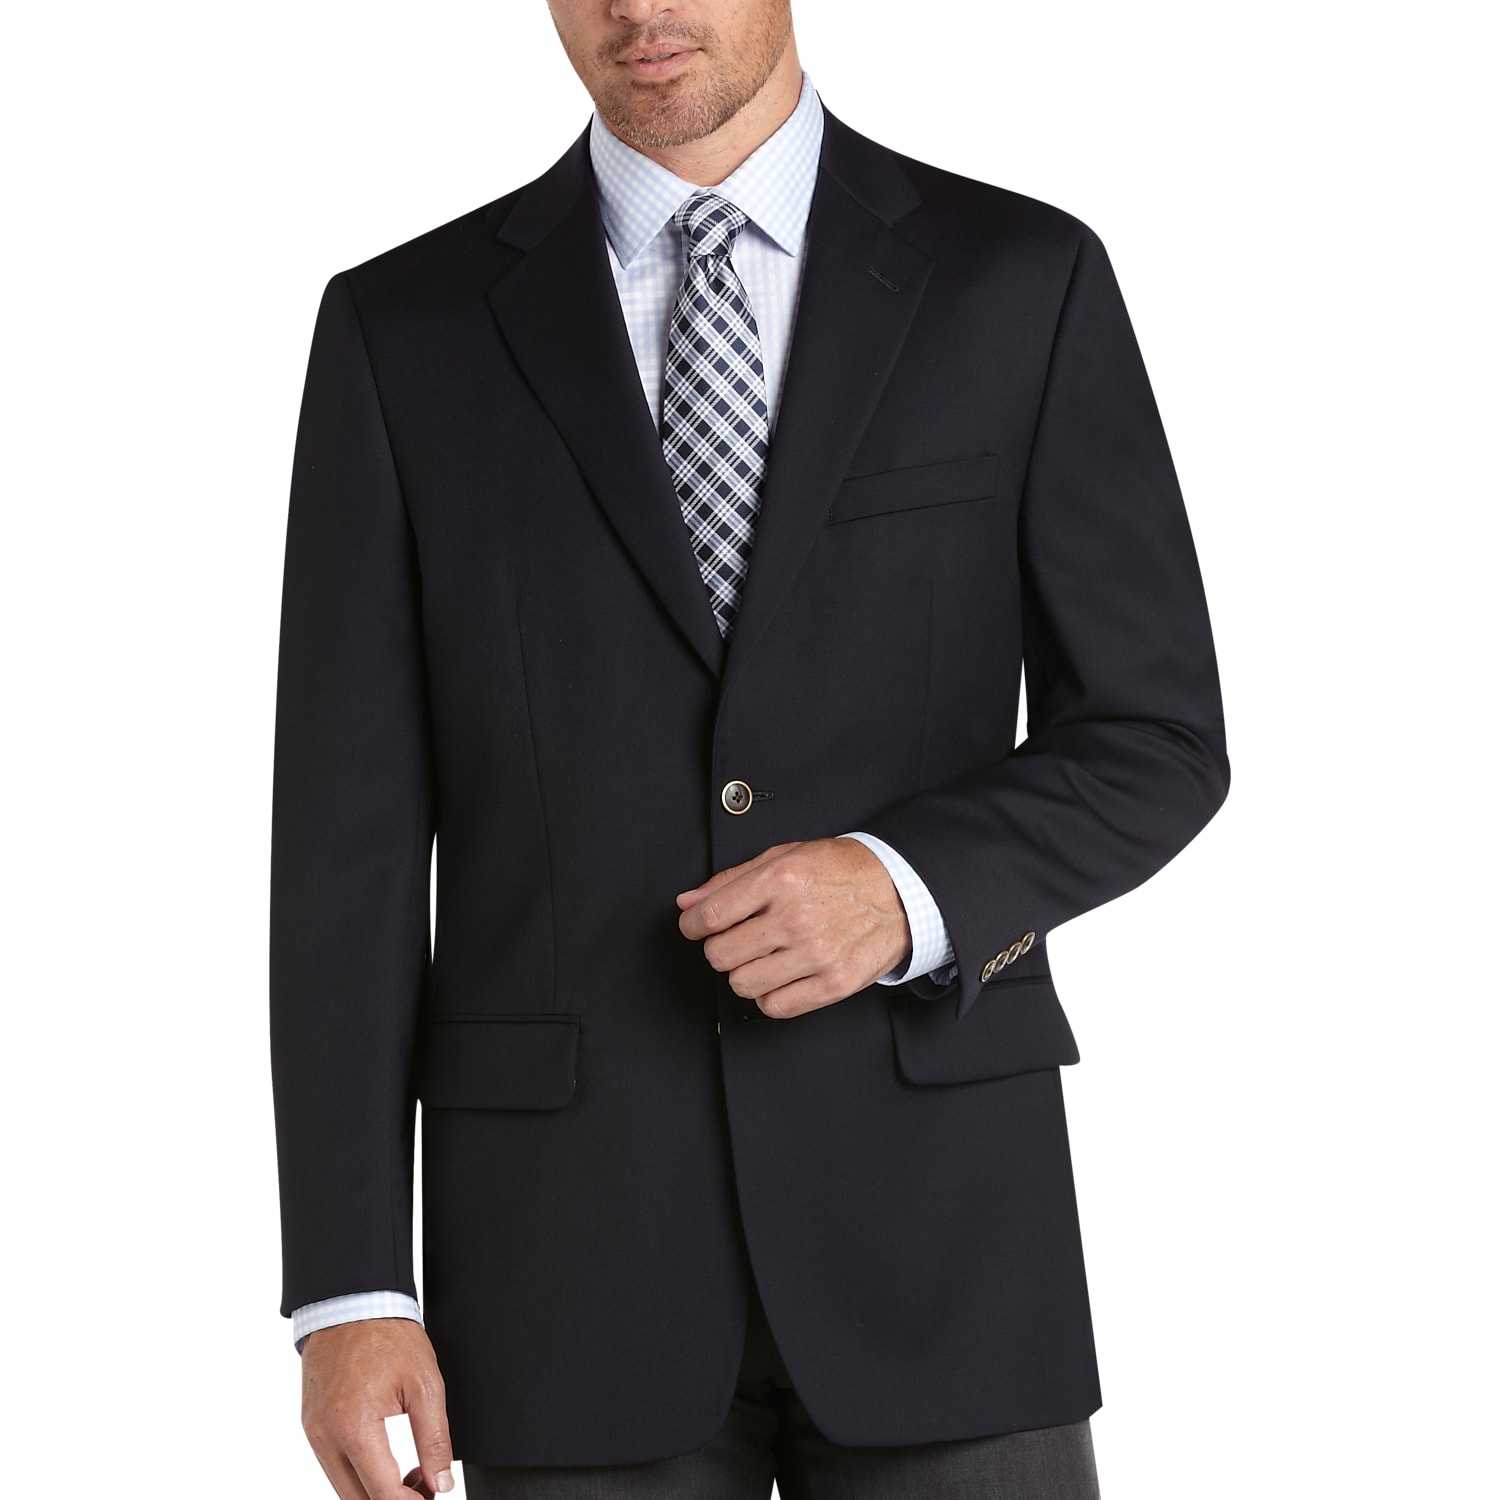 Top Rated Blazers & Sport Coats - Men's Blazers & Sport Coats ...